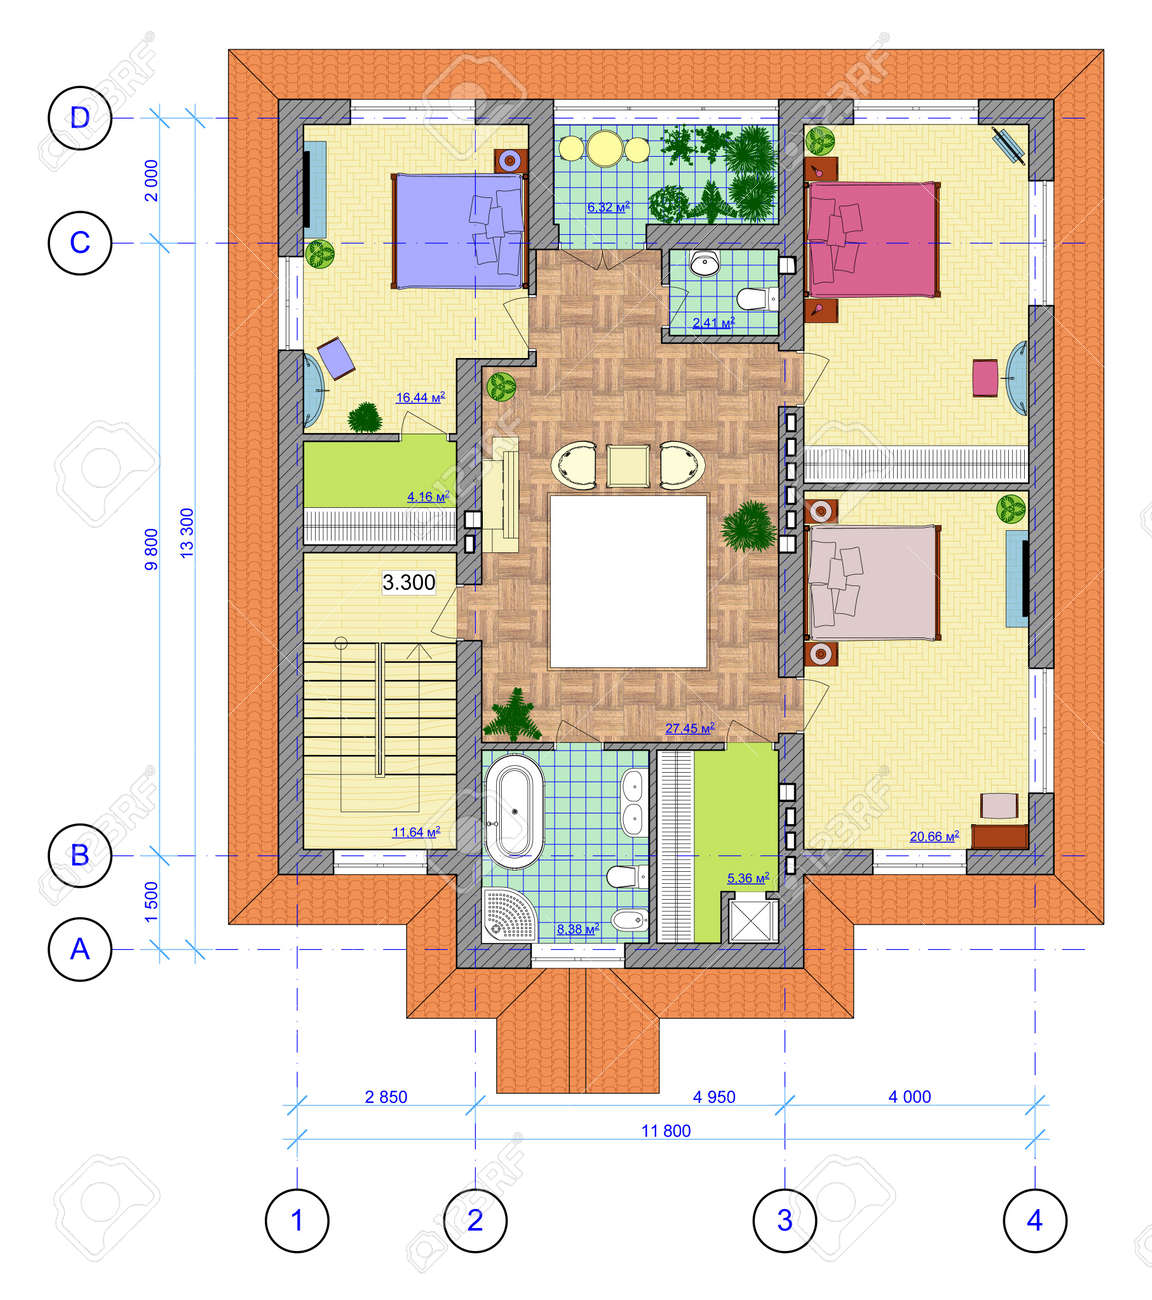 Architectural Multicolored Plan Of 2 Floor Of House With A Placement